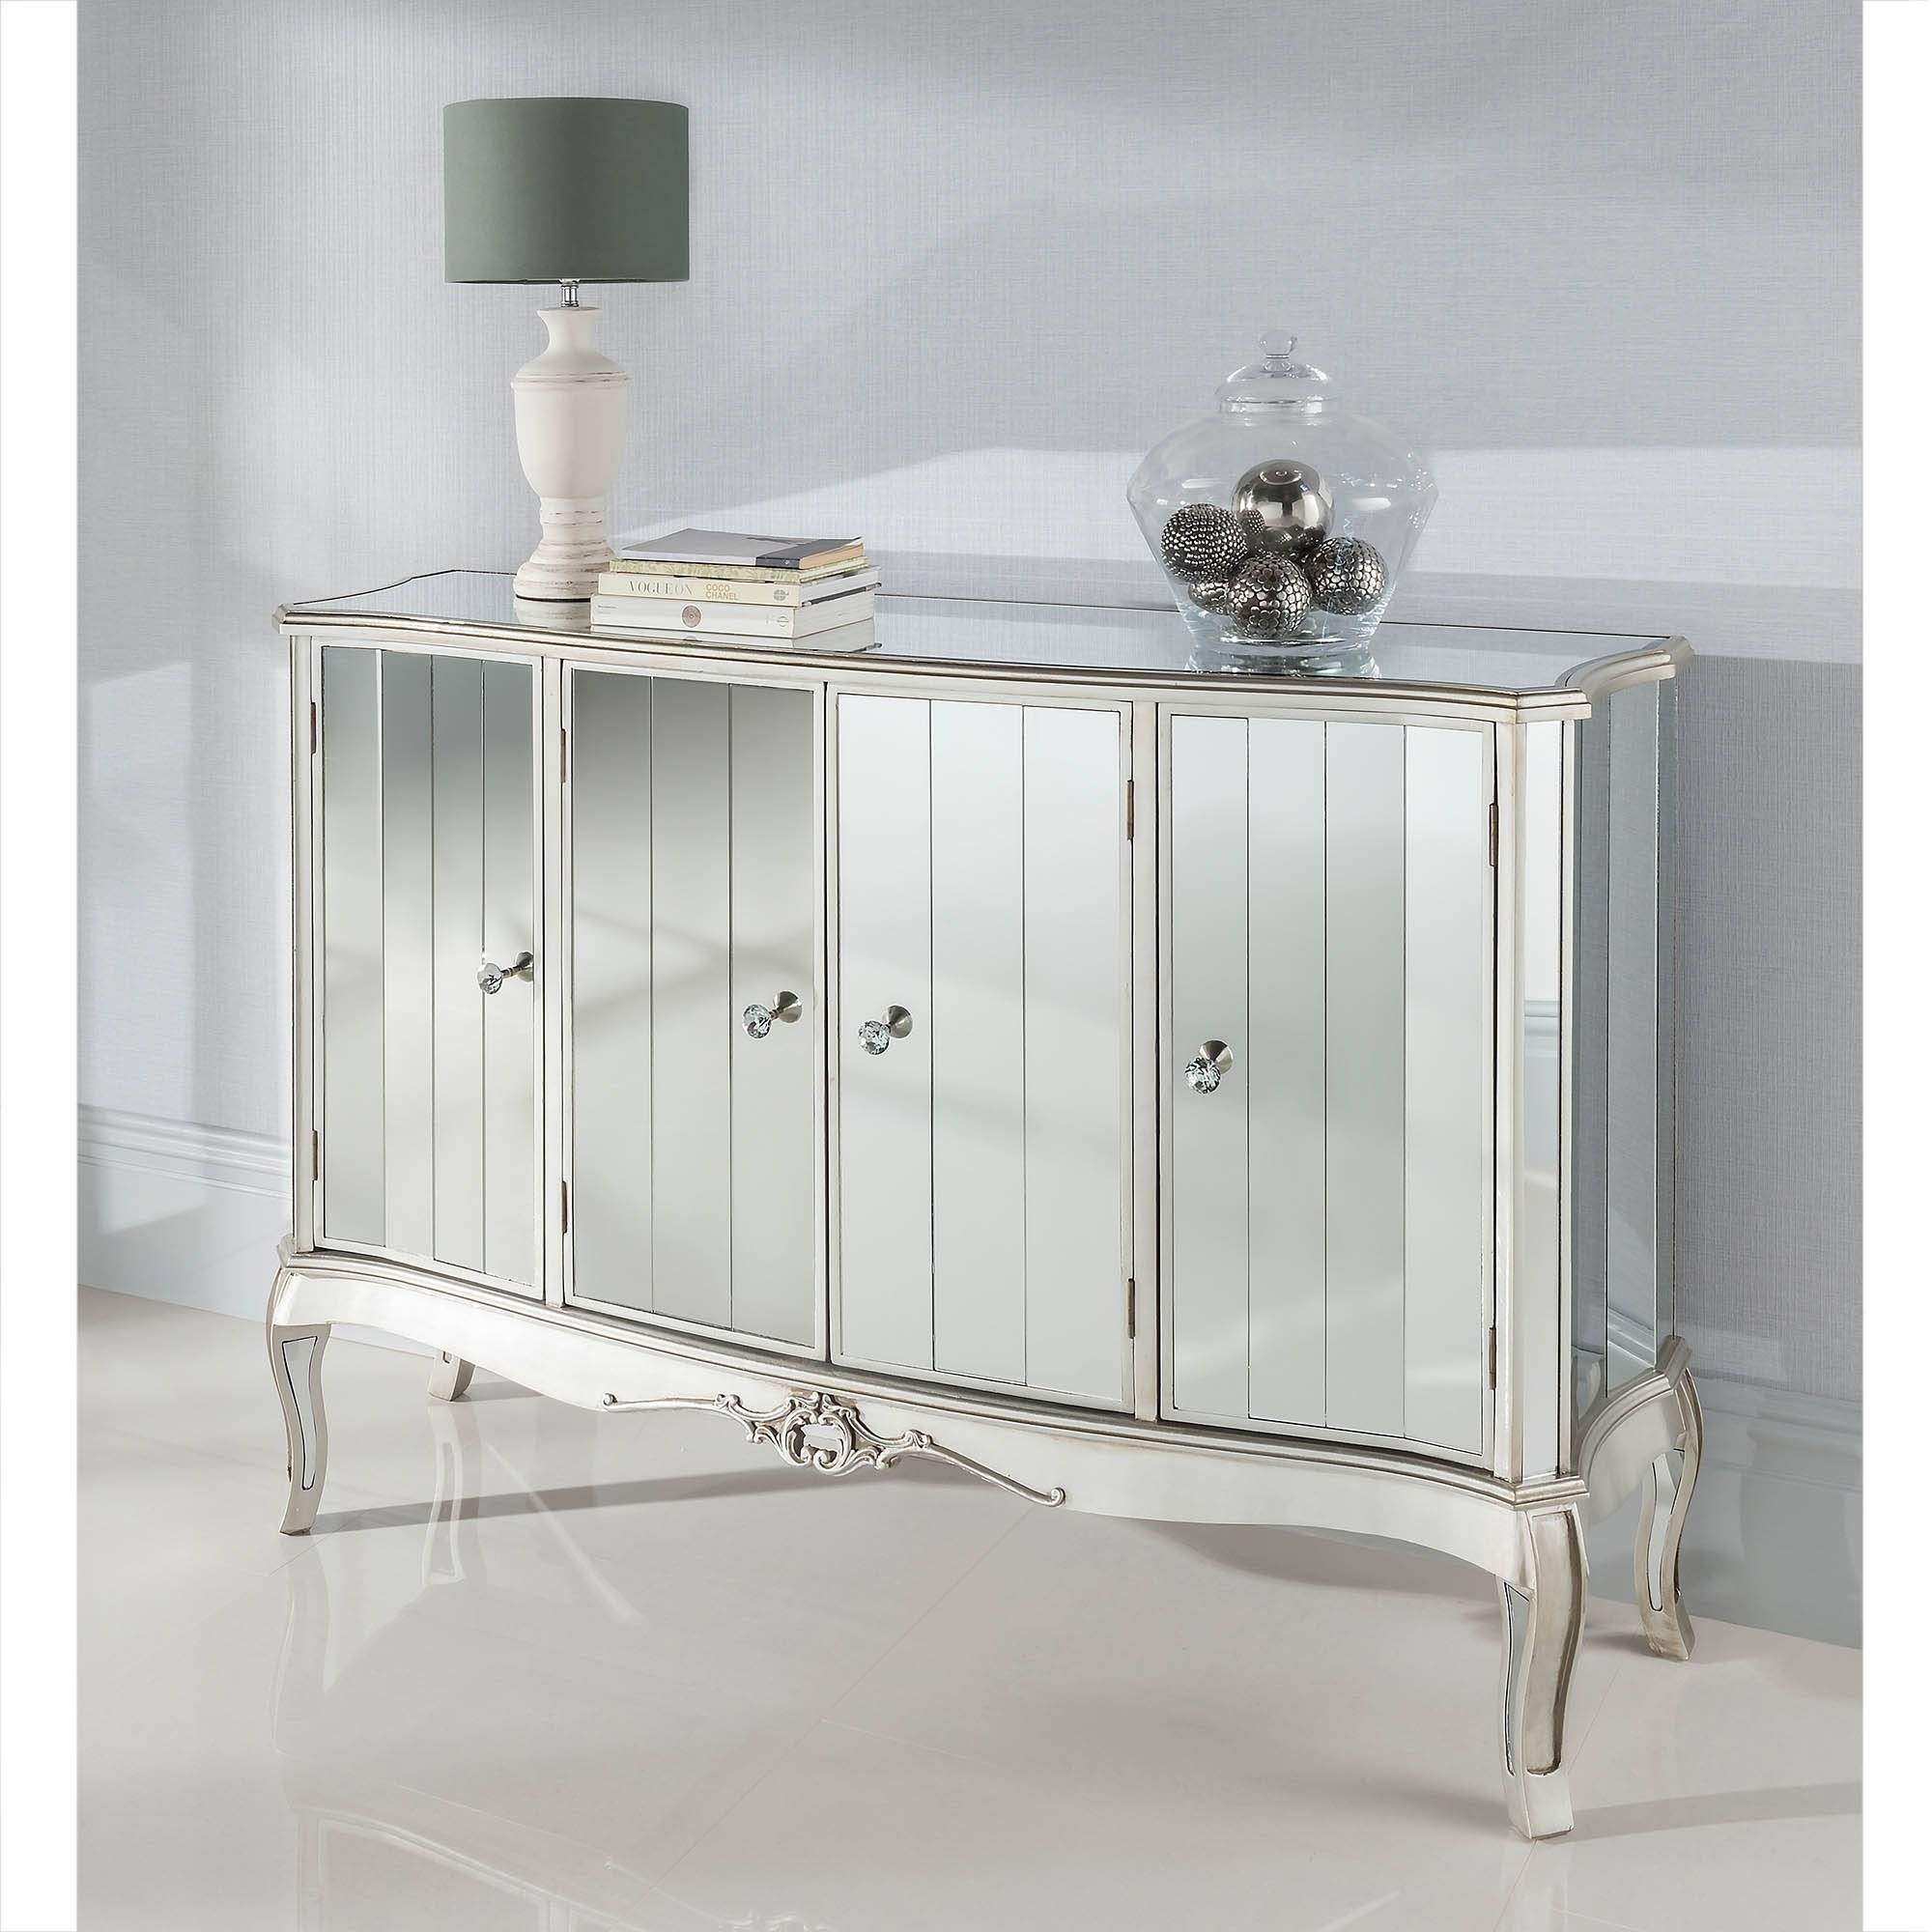 Argente Mirrored Four Door Sideboard | Mirrored Furniture within Venetian Mirrored Sideboards (Image 1 of 30)